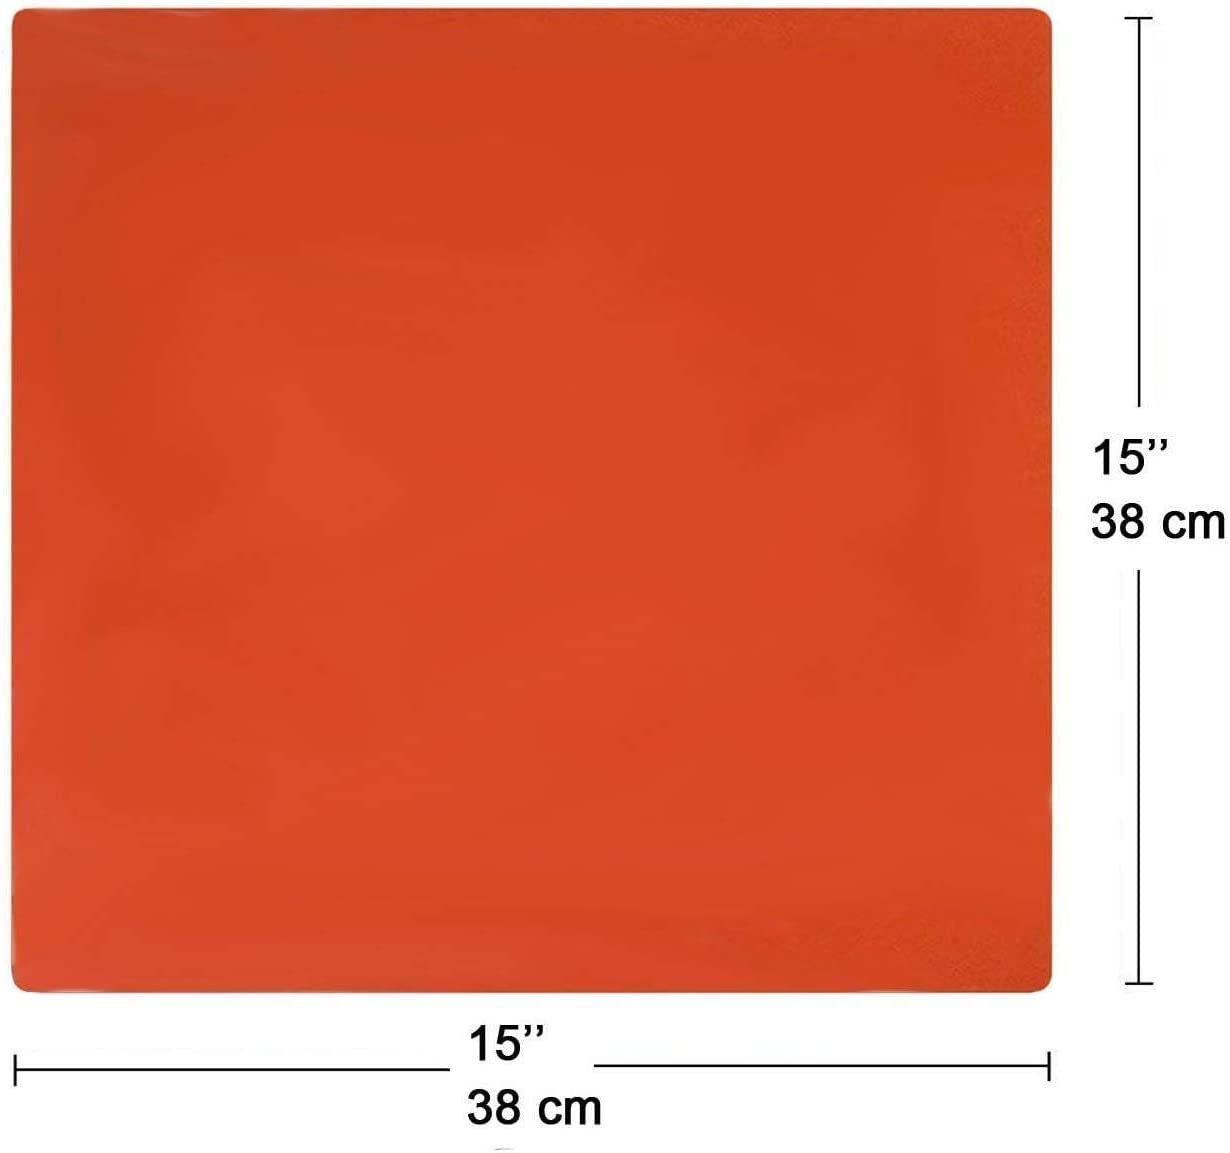 Yengsen Heat Press Pad Mat 0.3 Thickest Silicone Pad for Heat Press Machine Flat Heat Transfer Press Replacement Pad 12x15Inch